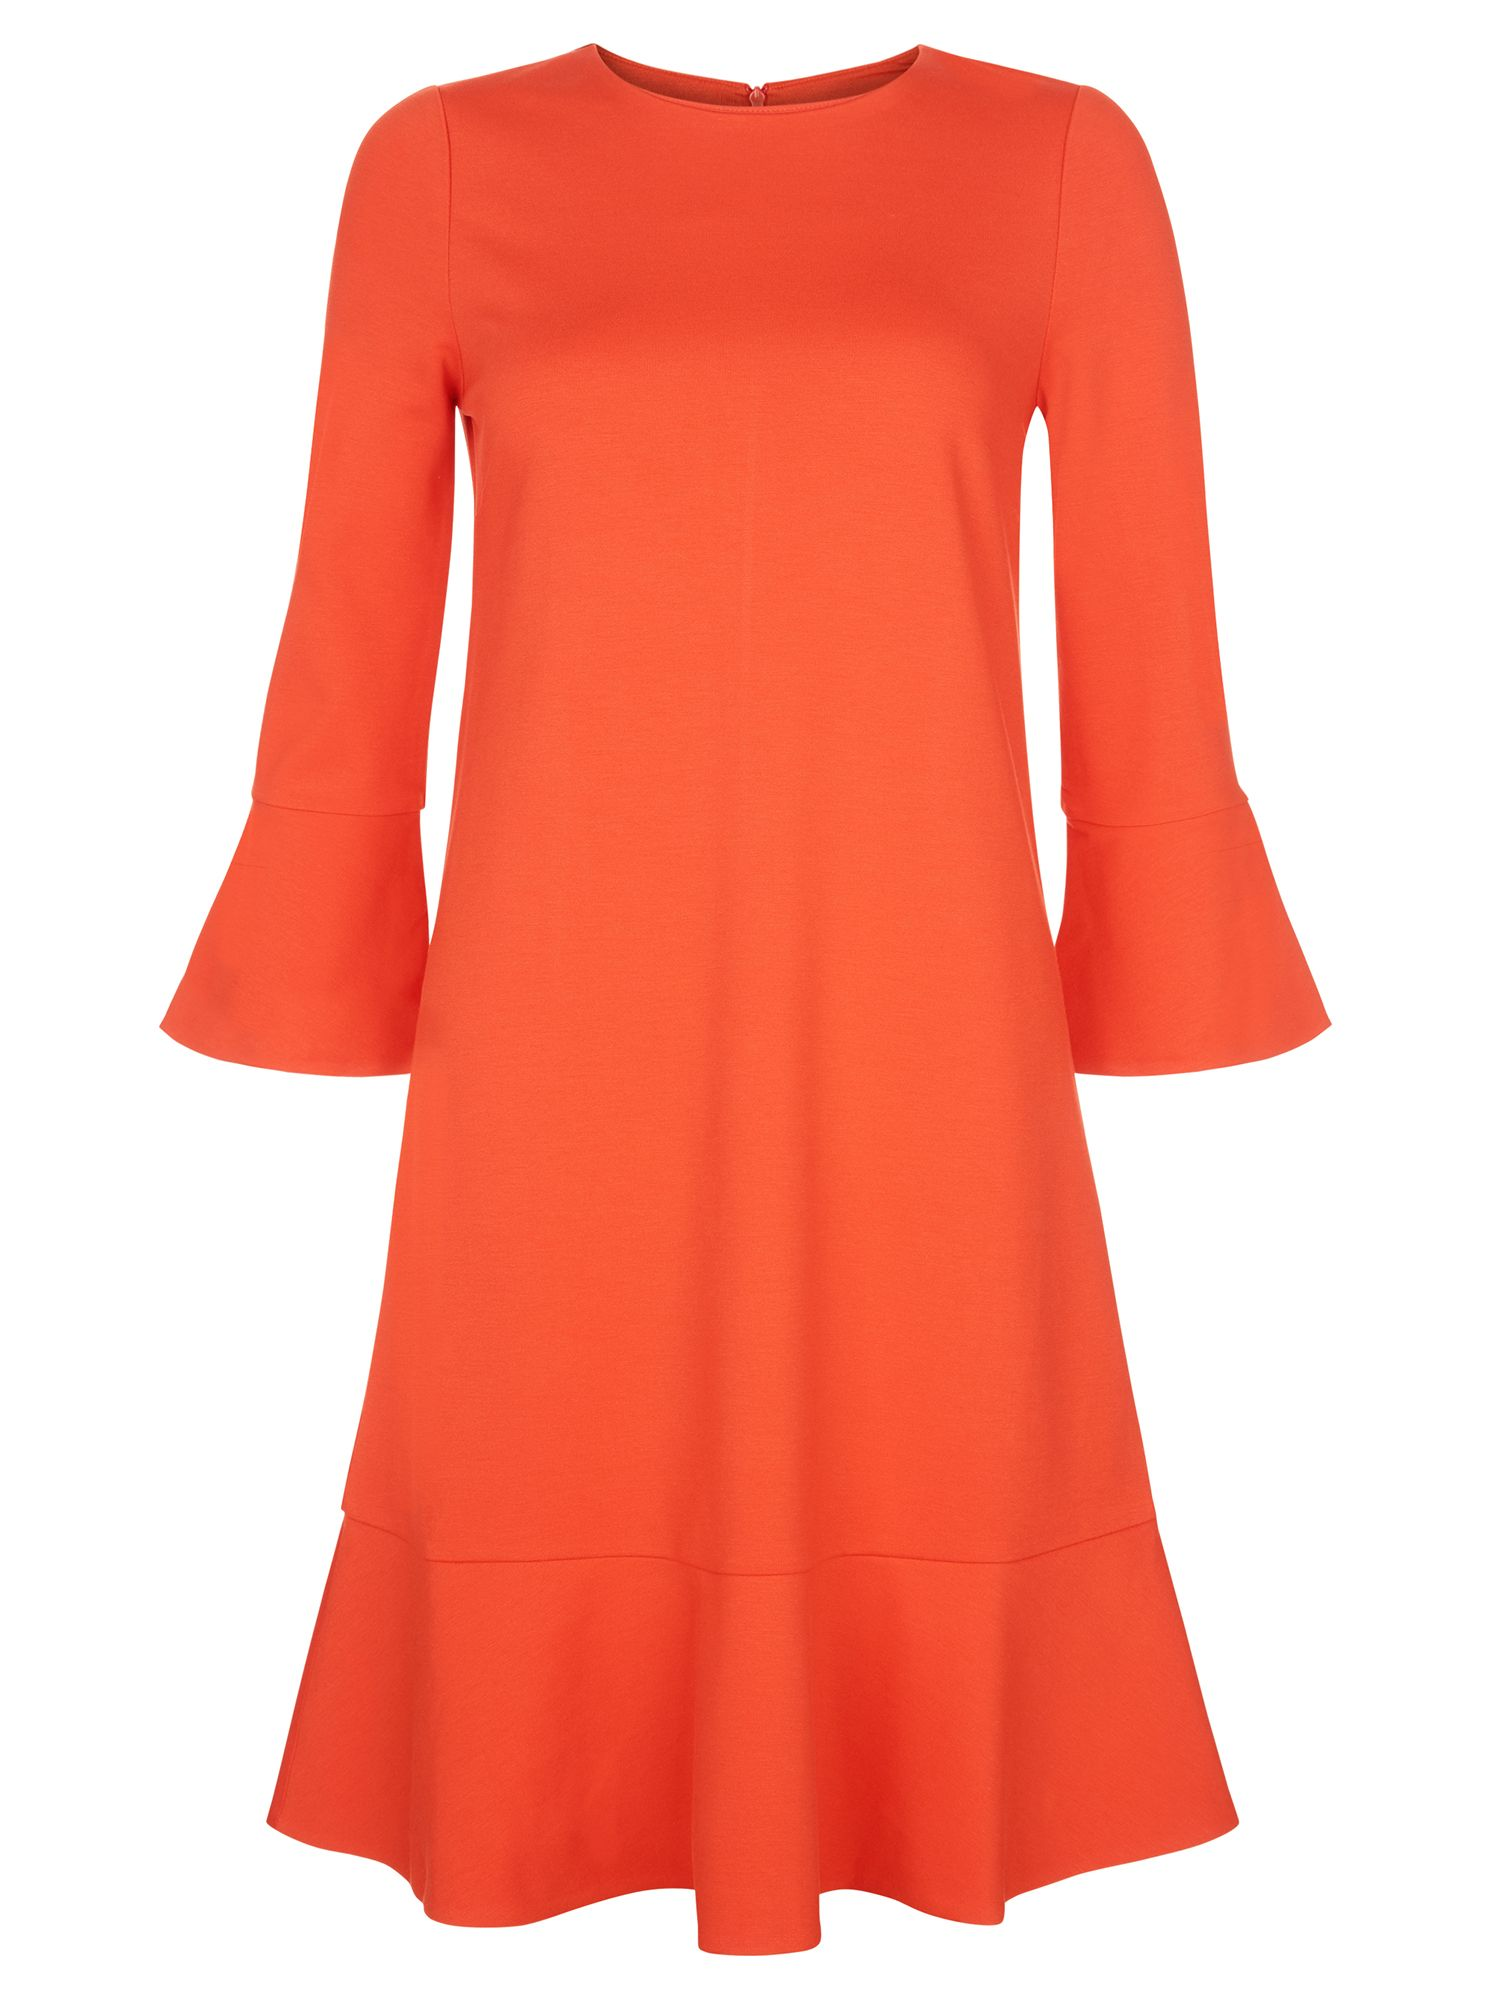 Hobbs Tulip Dress Orange